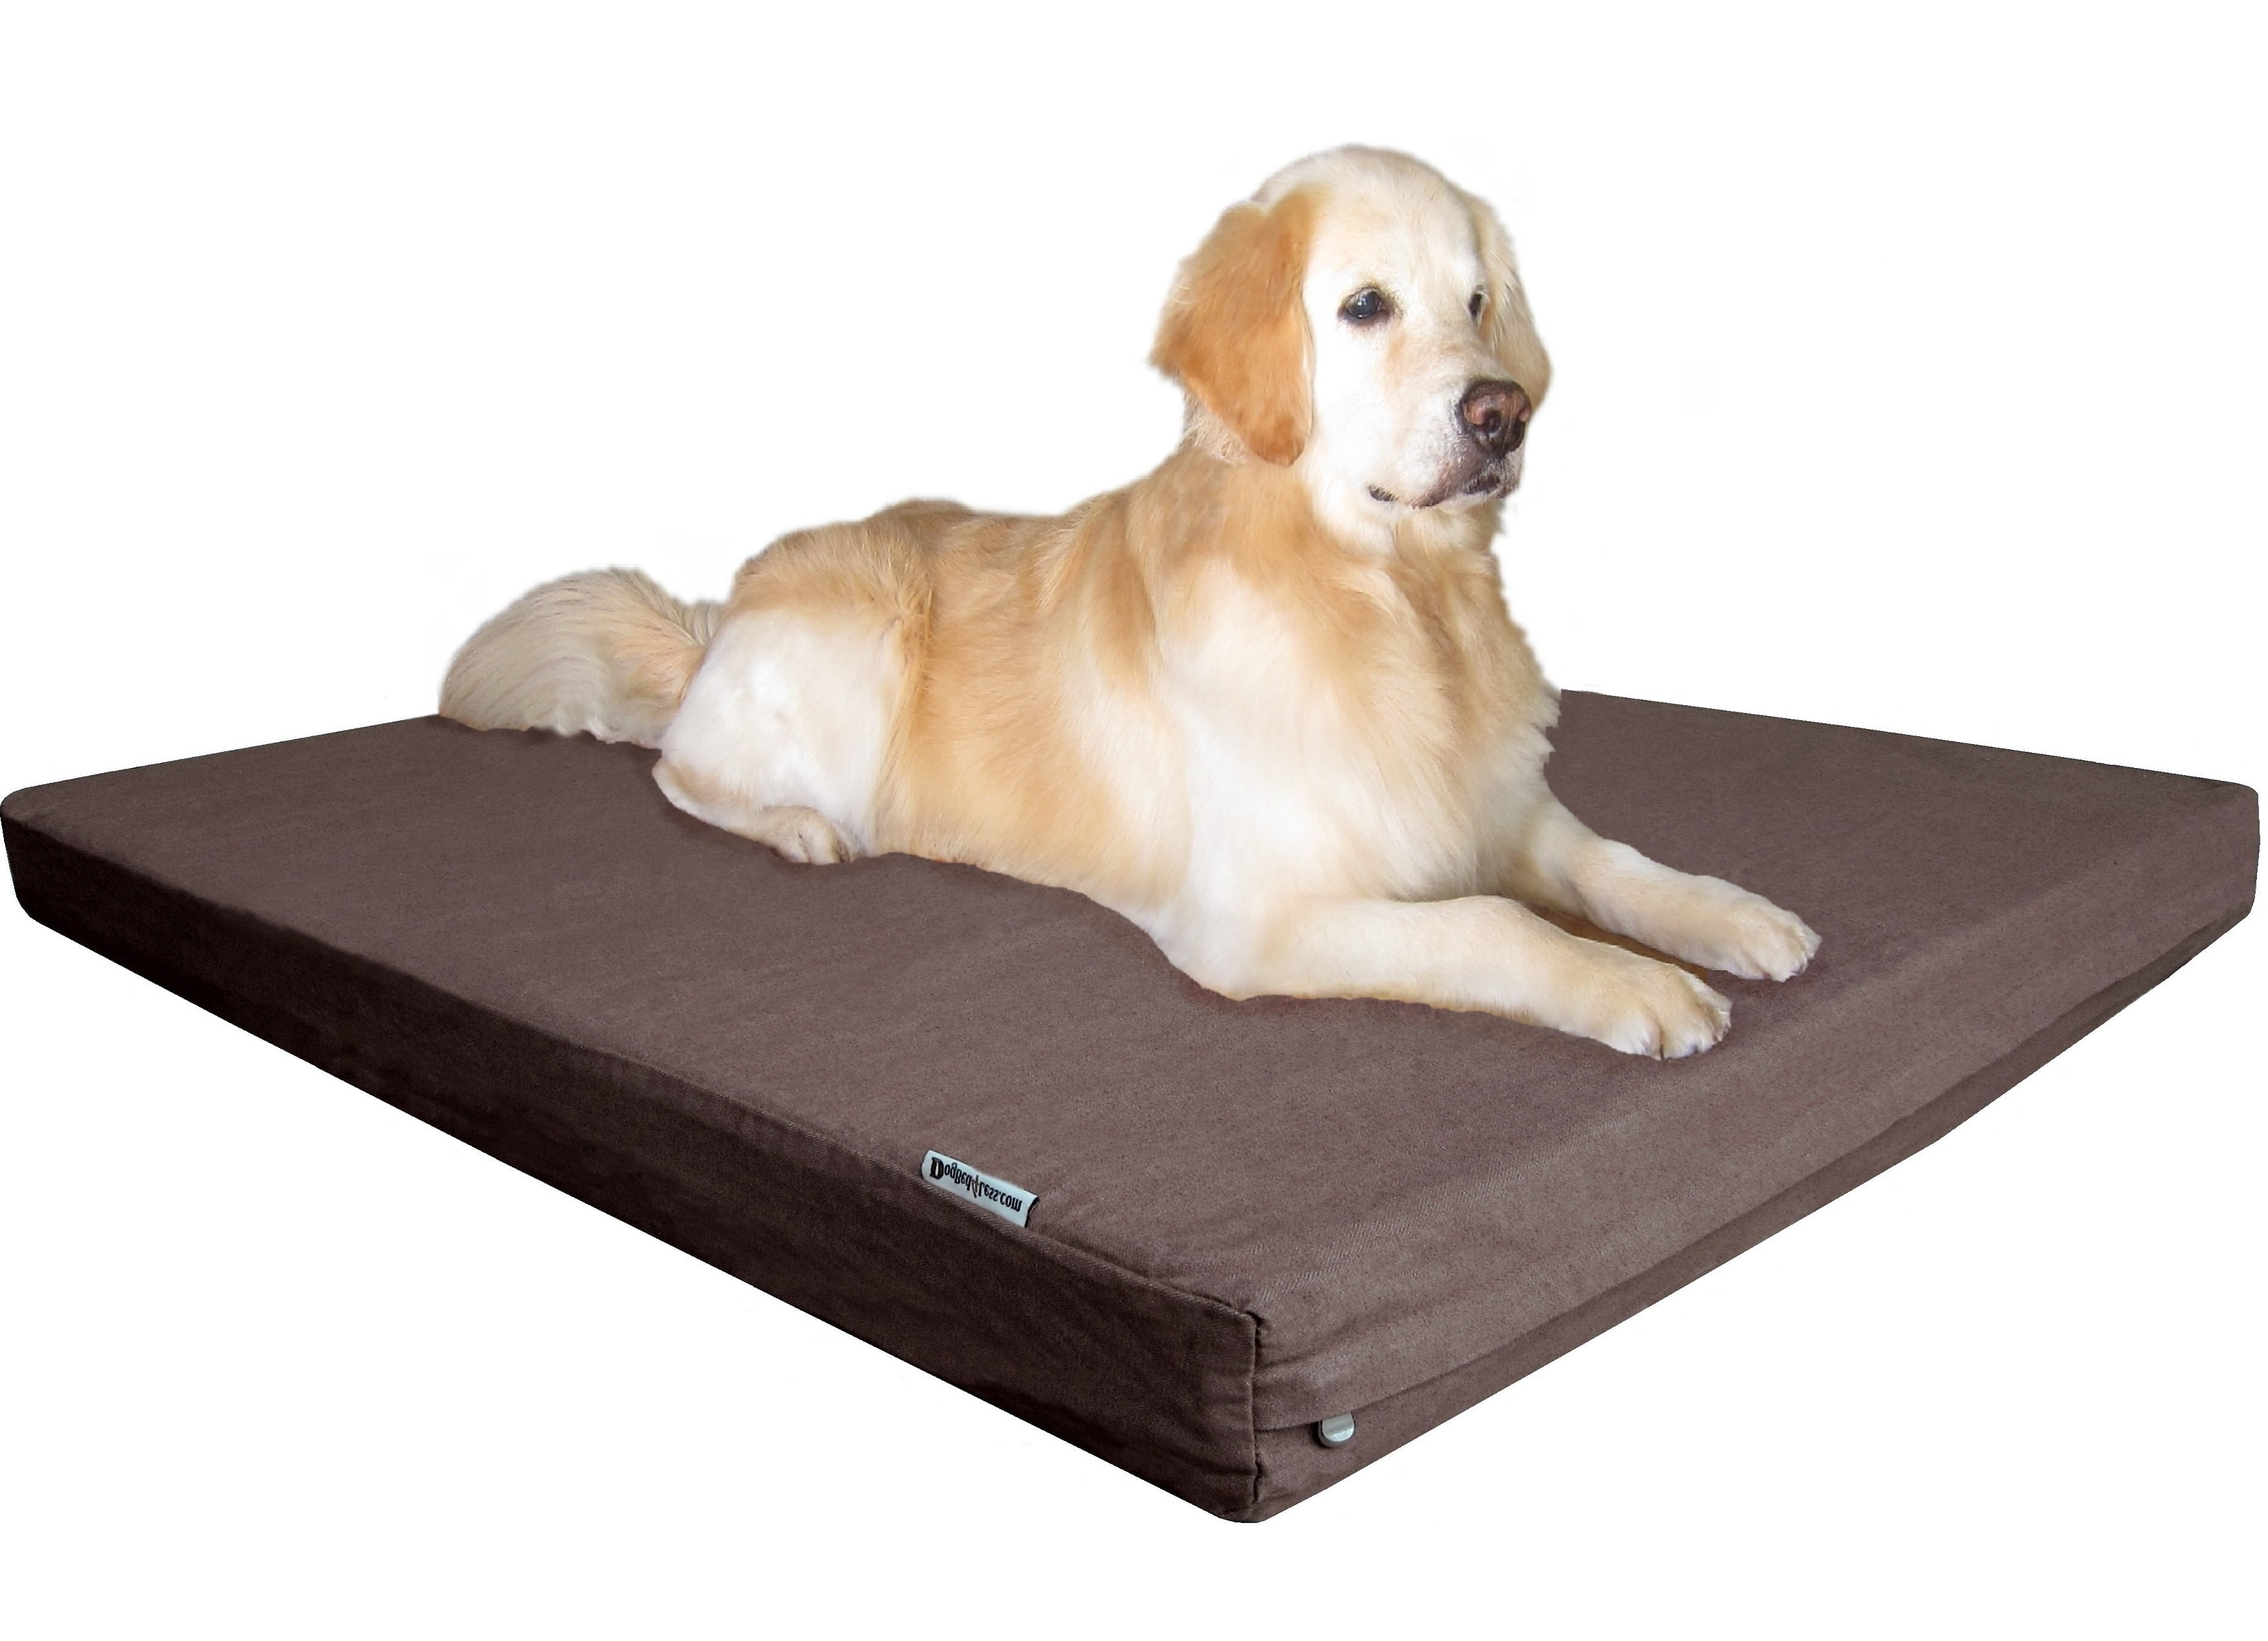 Medium to Extra Large Dog Bed Replacement Covers only Dogbed4less Durable Olive Green Canvas Pet Bed External Duvet Cover for Small